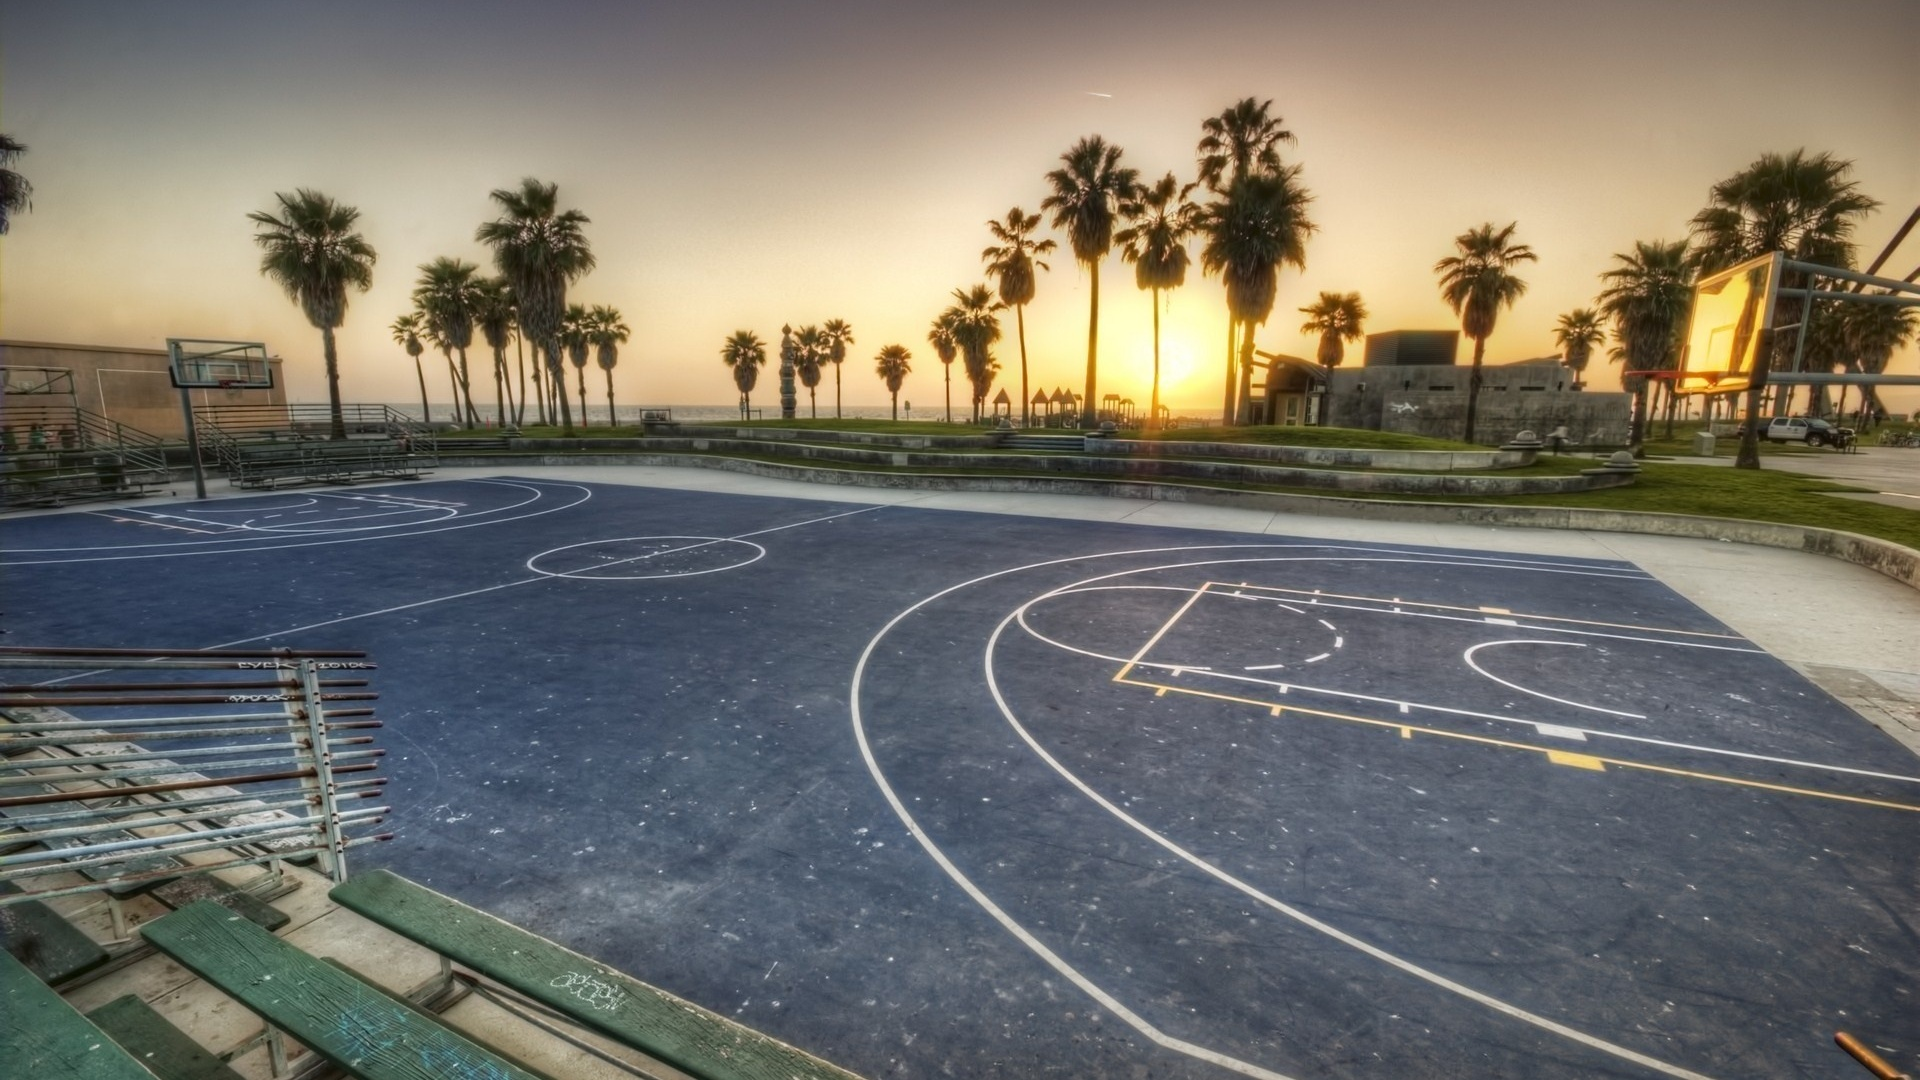 1920x1080 La Sunset Los Angeles California Basketball 1920x1080